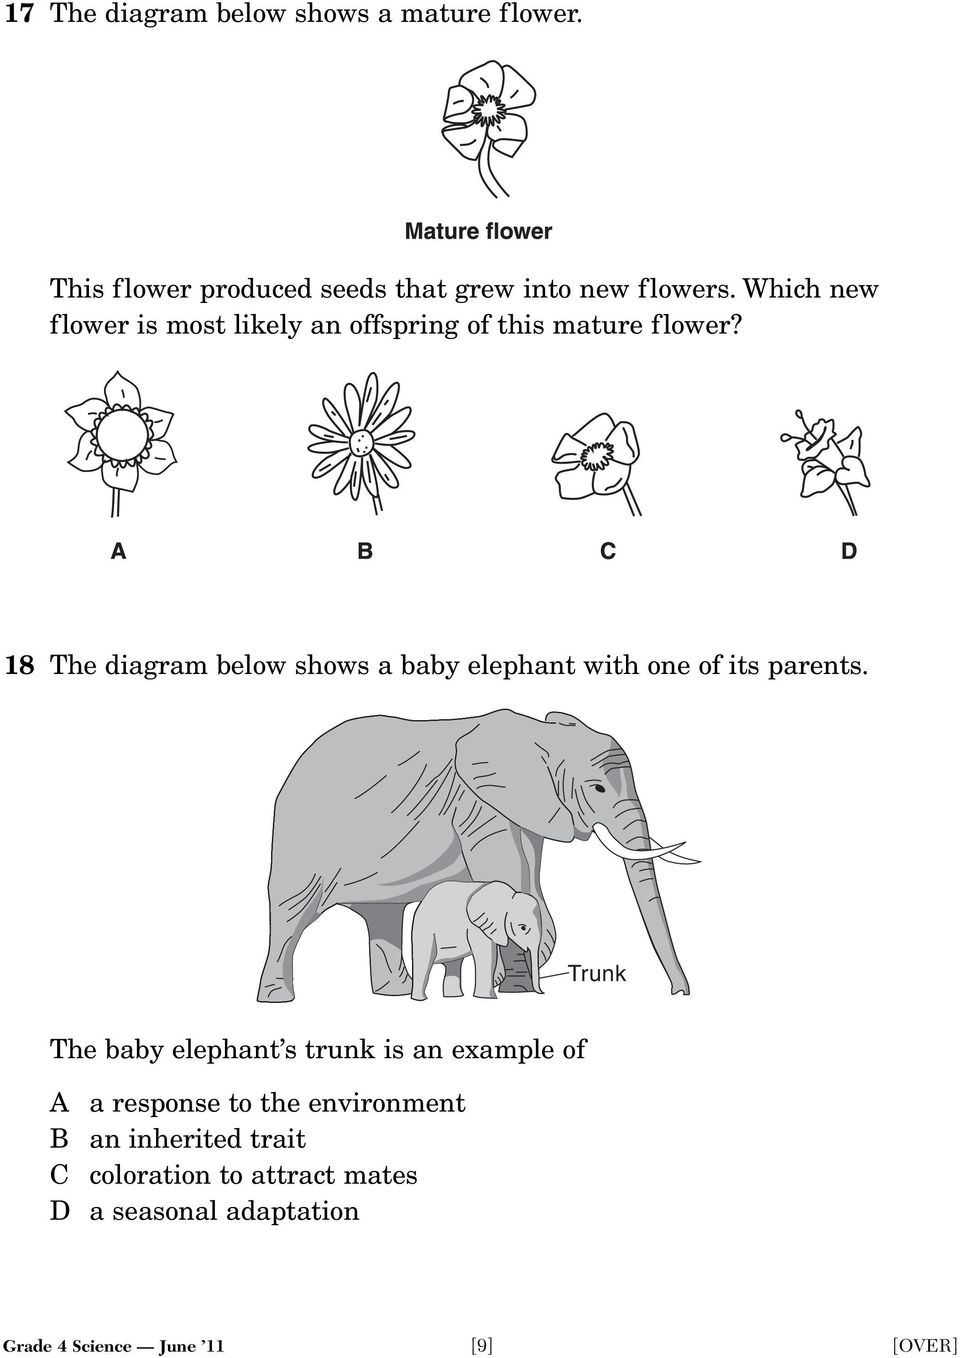 18 The diagram below shows a baby elephant with one of its parents.